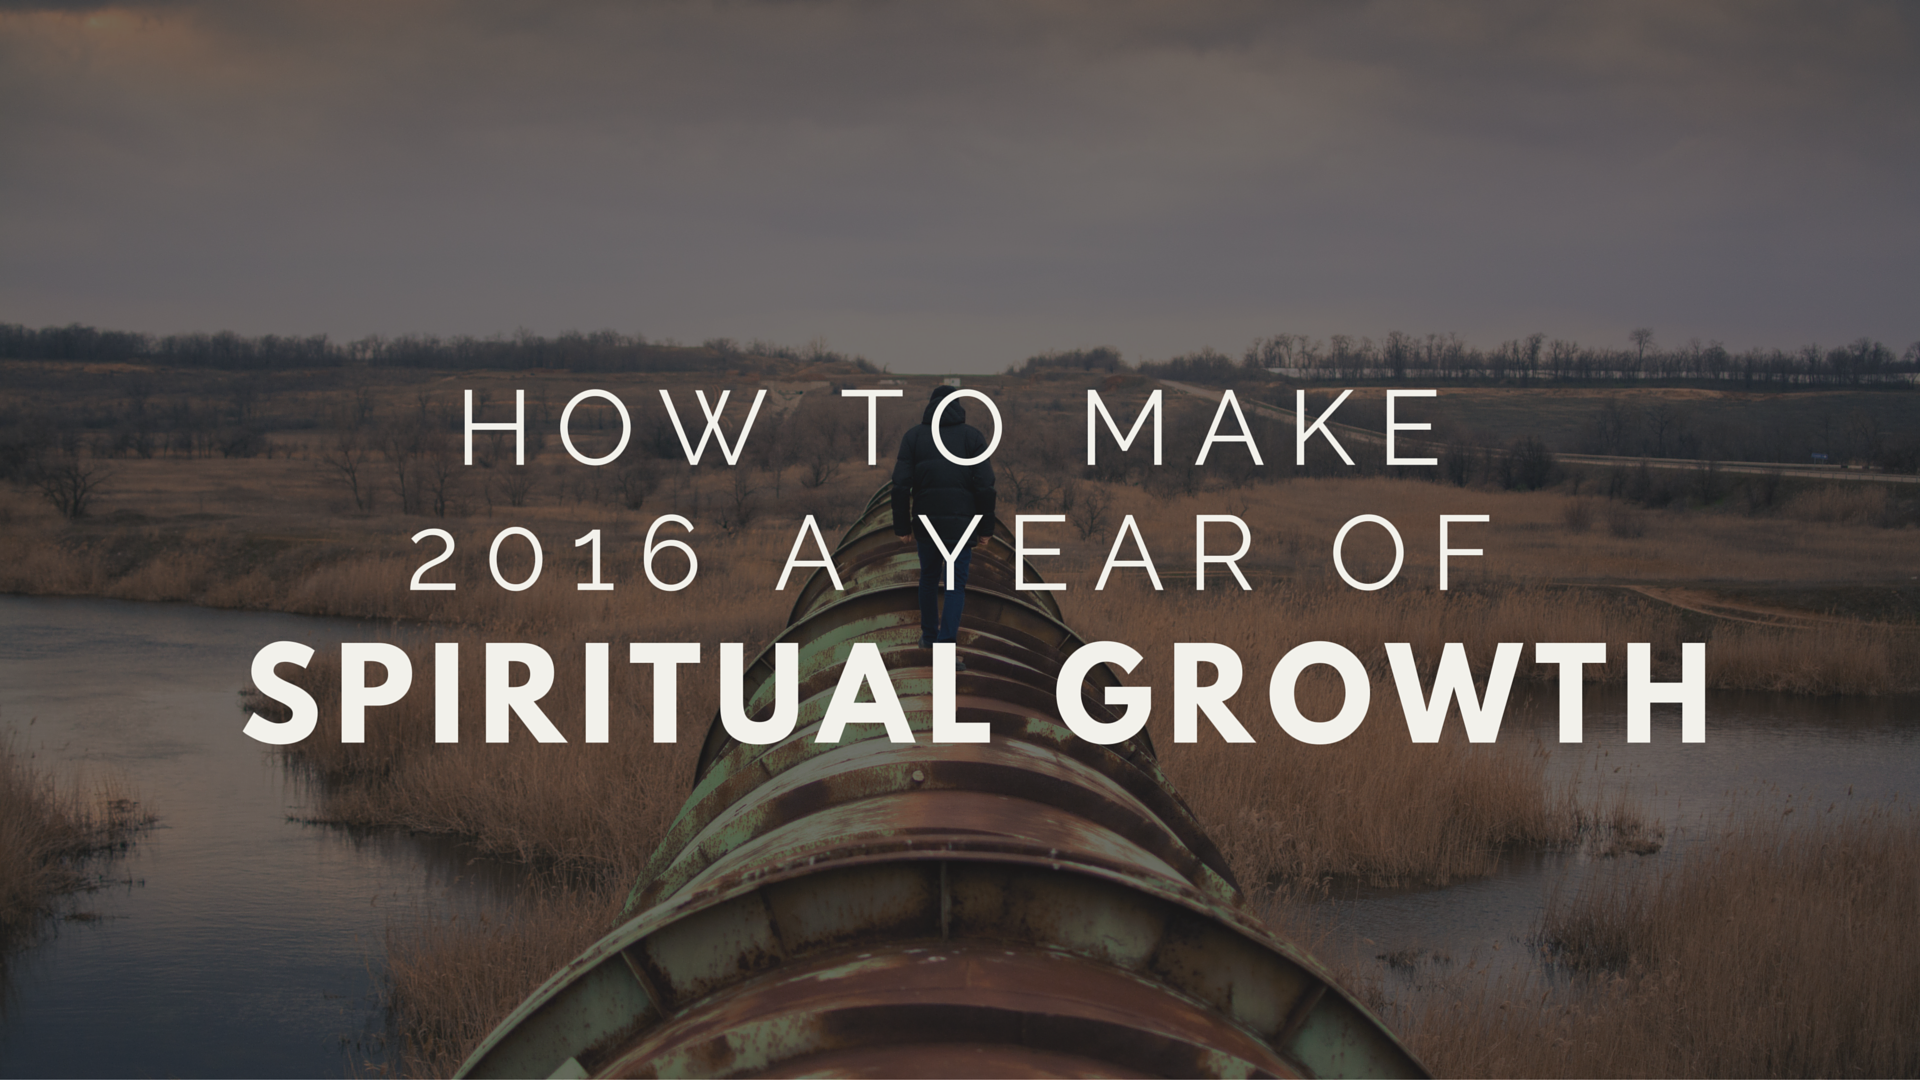 make 2016 the year you your relationship with god stronger than ever